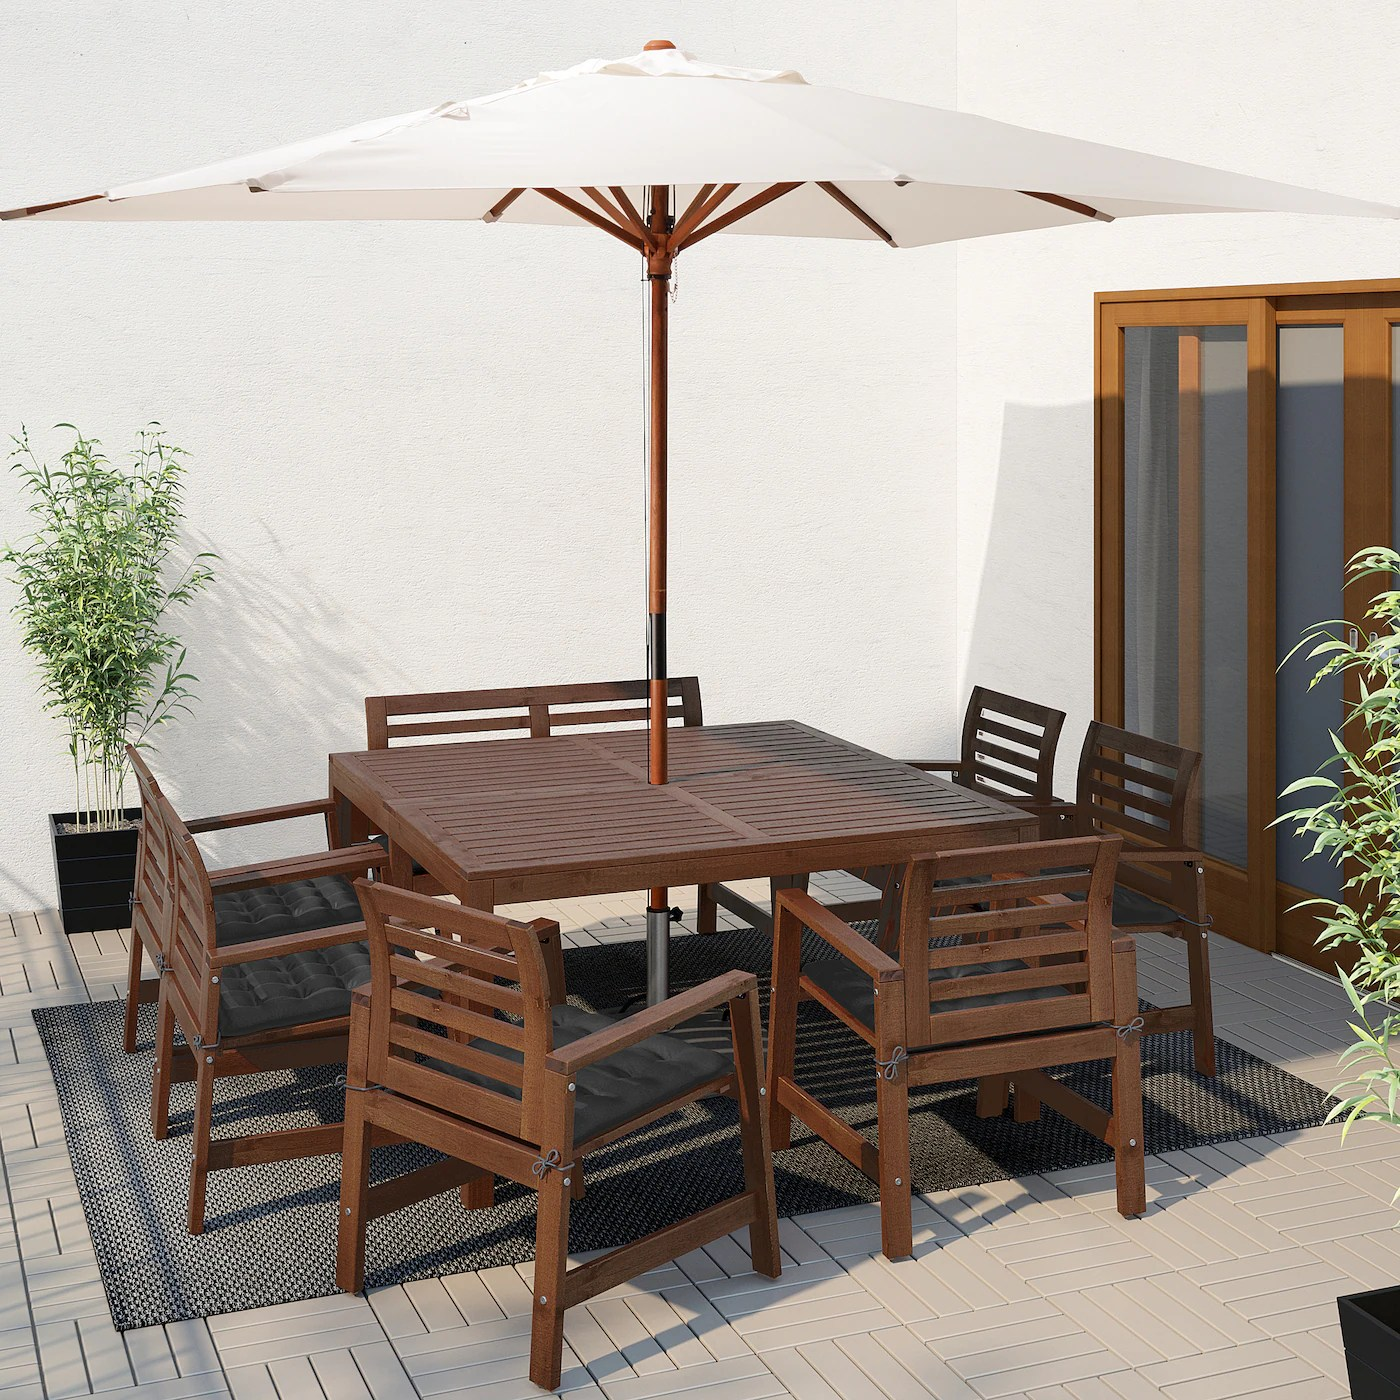 Applaro Table 6 Chairs Armr Bench Outdoor Brown Stained Hallo Black Ikea